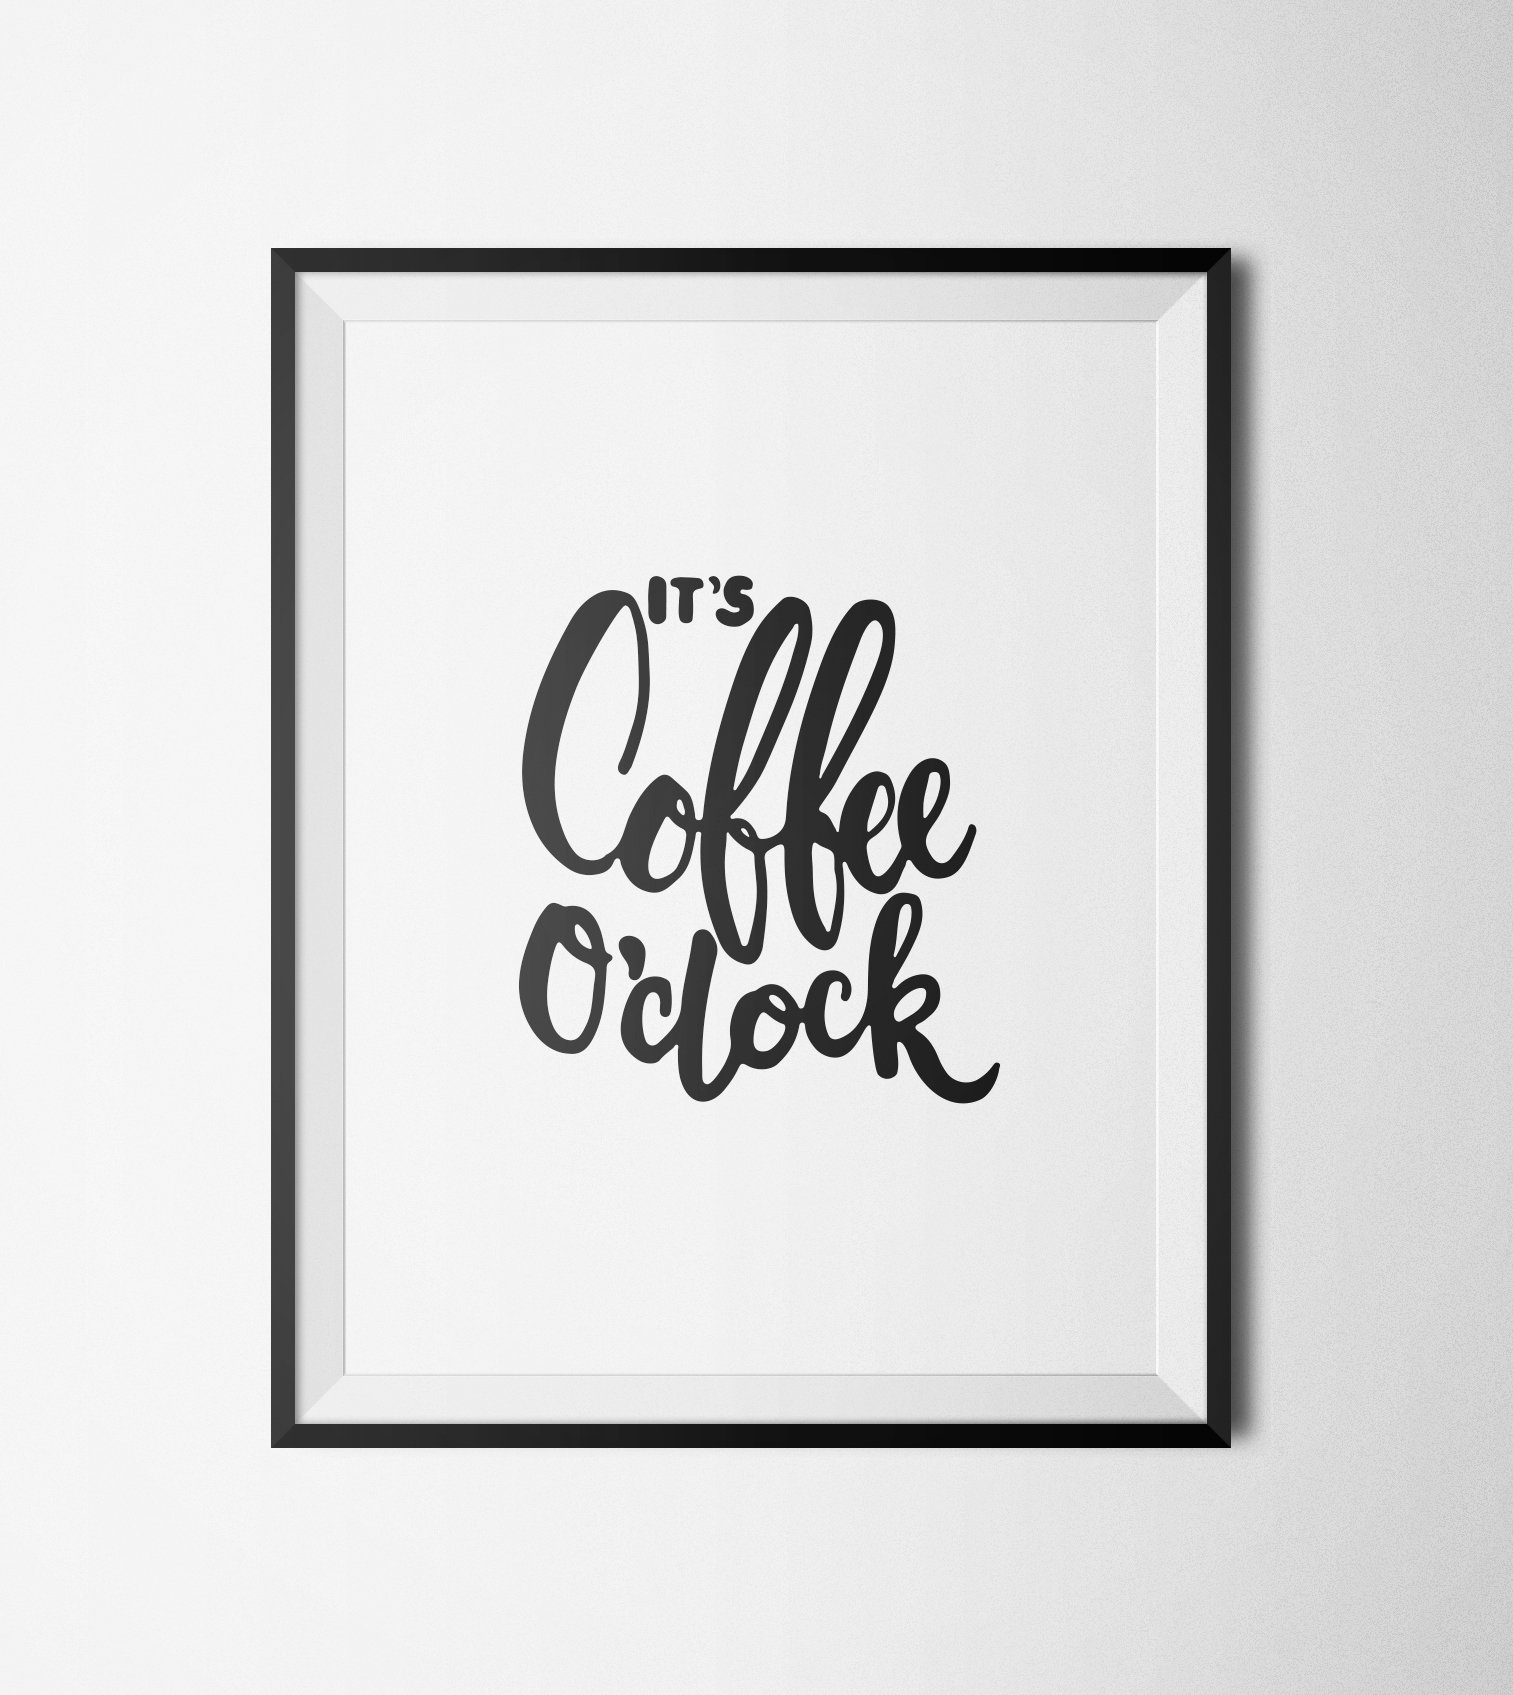 picture about Printable Motivational Posters named Motivational Poster, Its espresso Oclock Printable Quotation, Typography Wall Artwork, Printable Artwork, Typography Print, Quotation Posters bought through Create A Wake